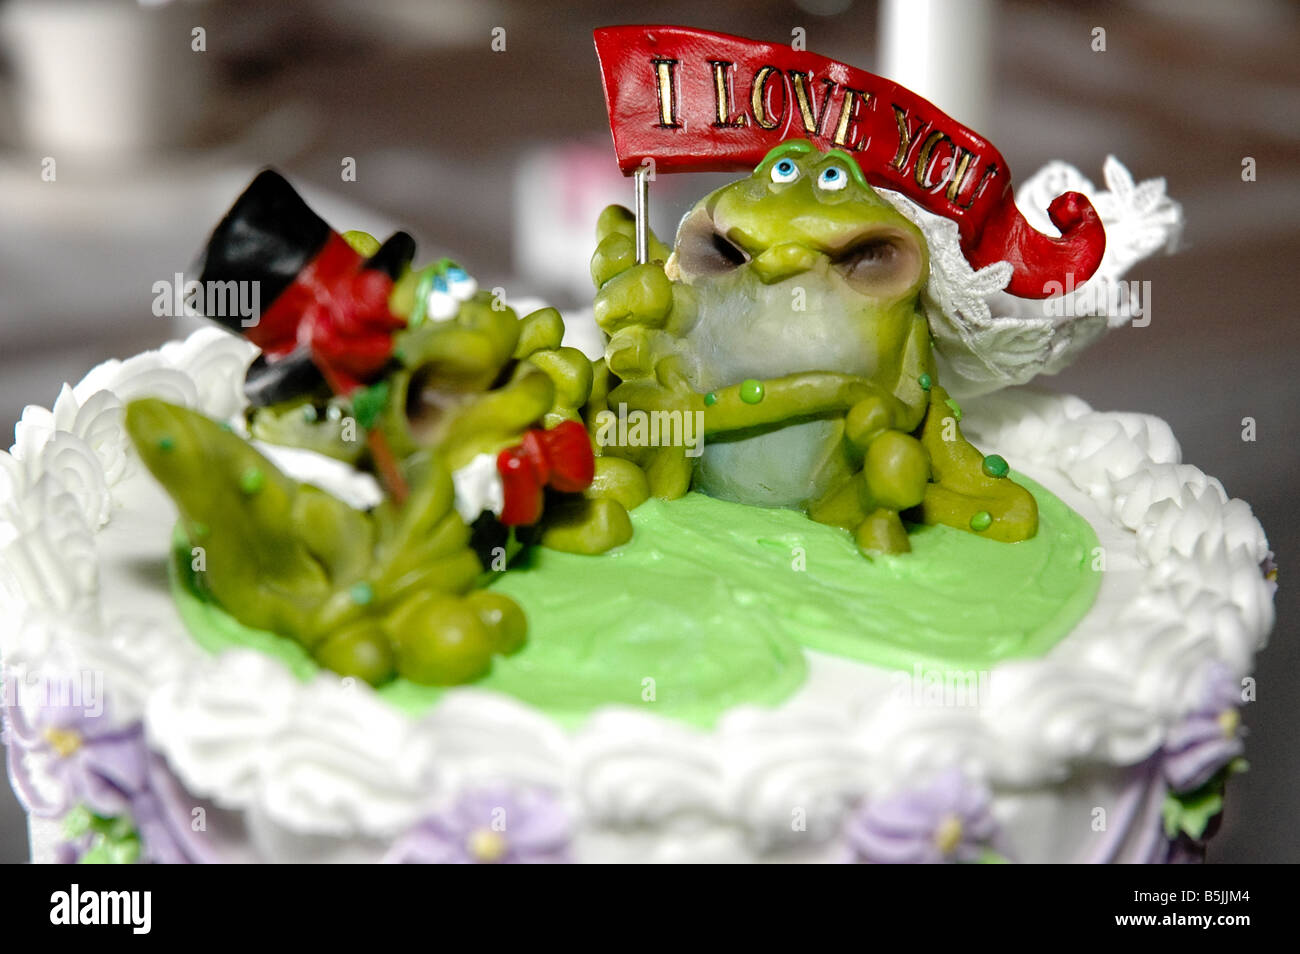 Wondrous Ugly Cake Stock Photos Ugly Cake Stock Images Alamy Funny Birthday Cards Online Alyptdamsfinfo